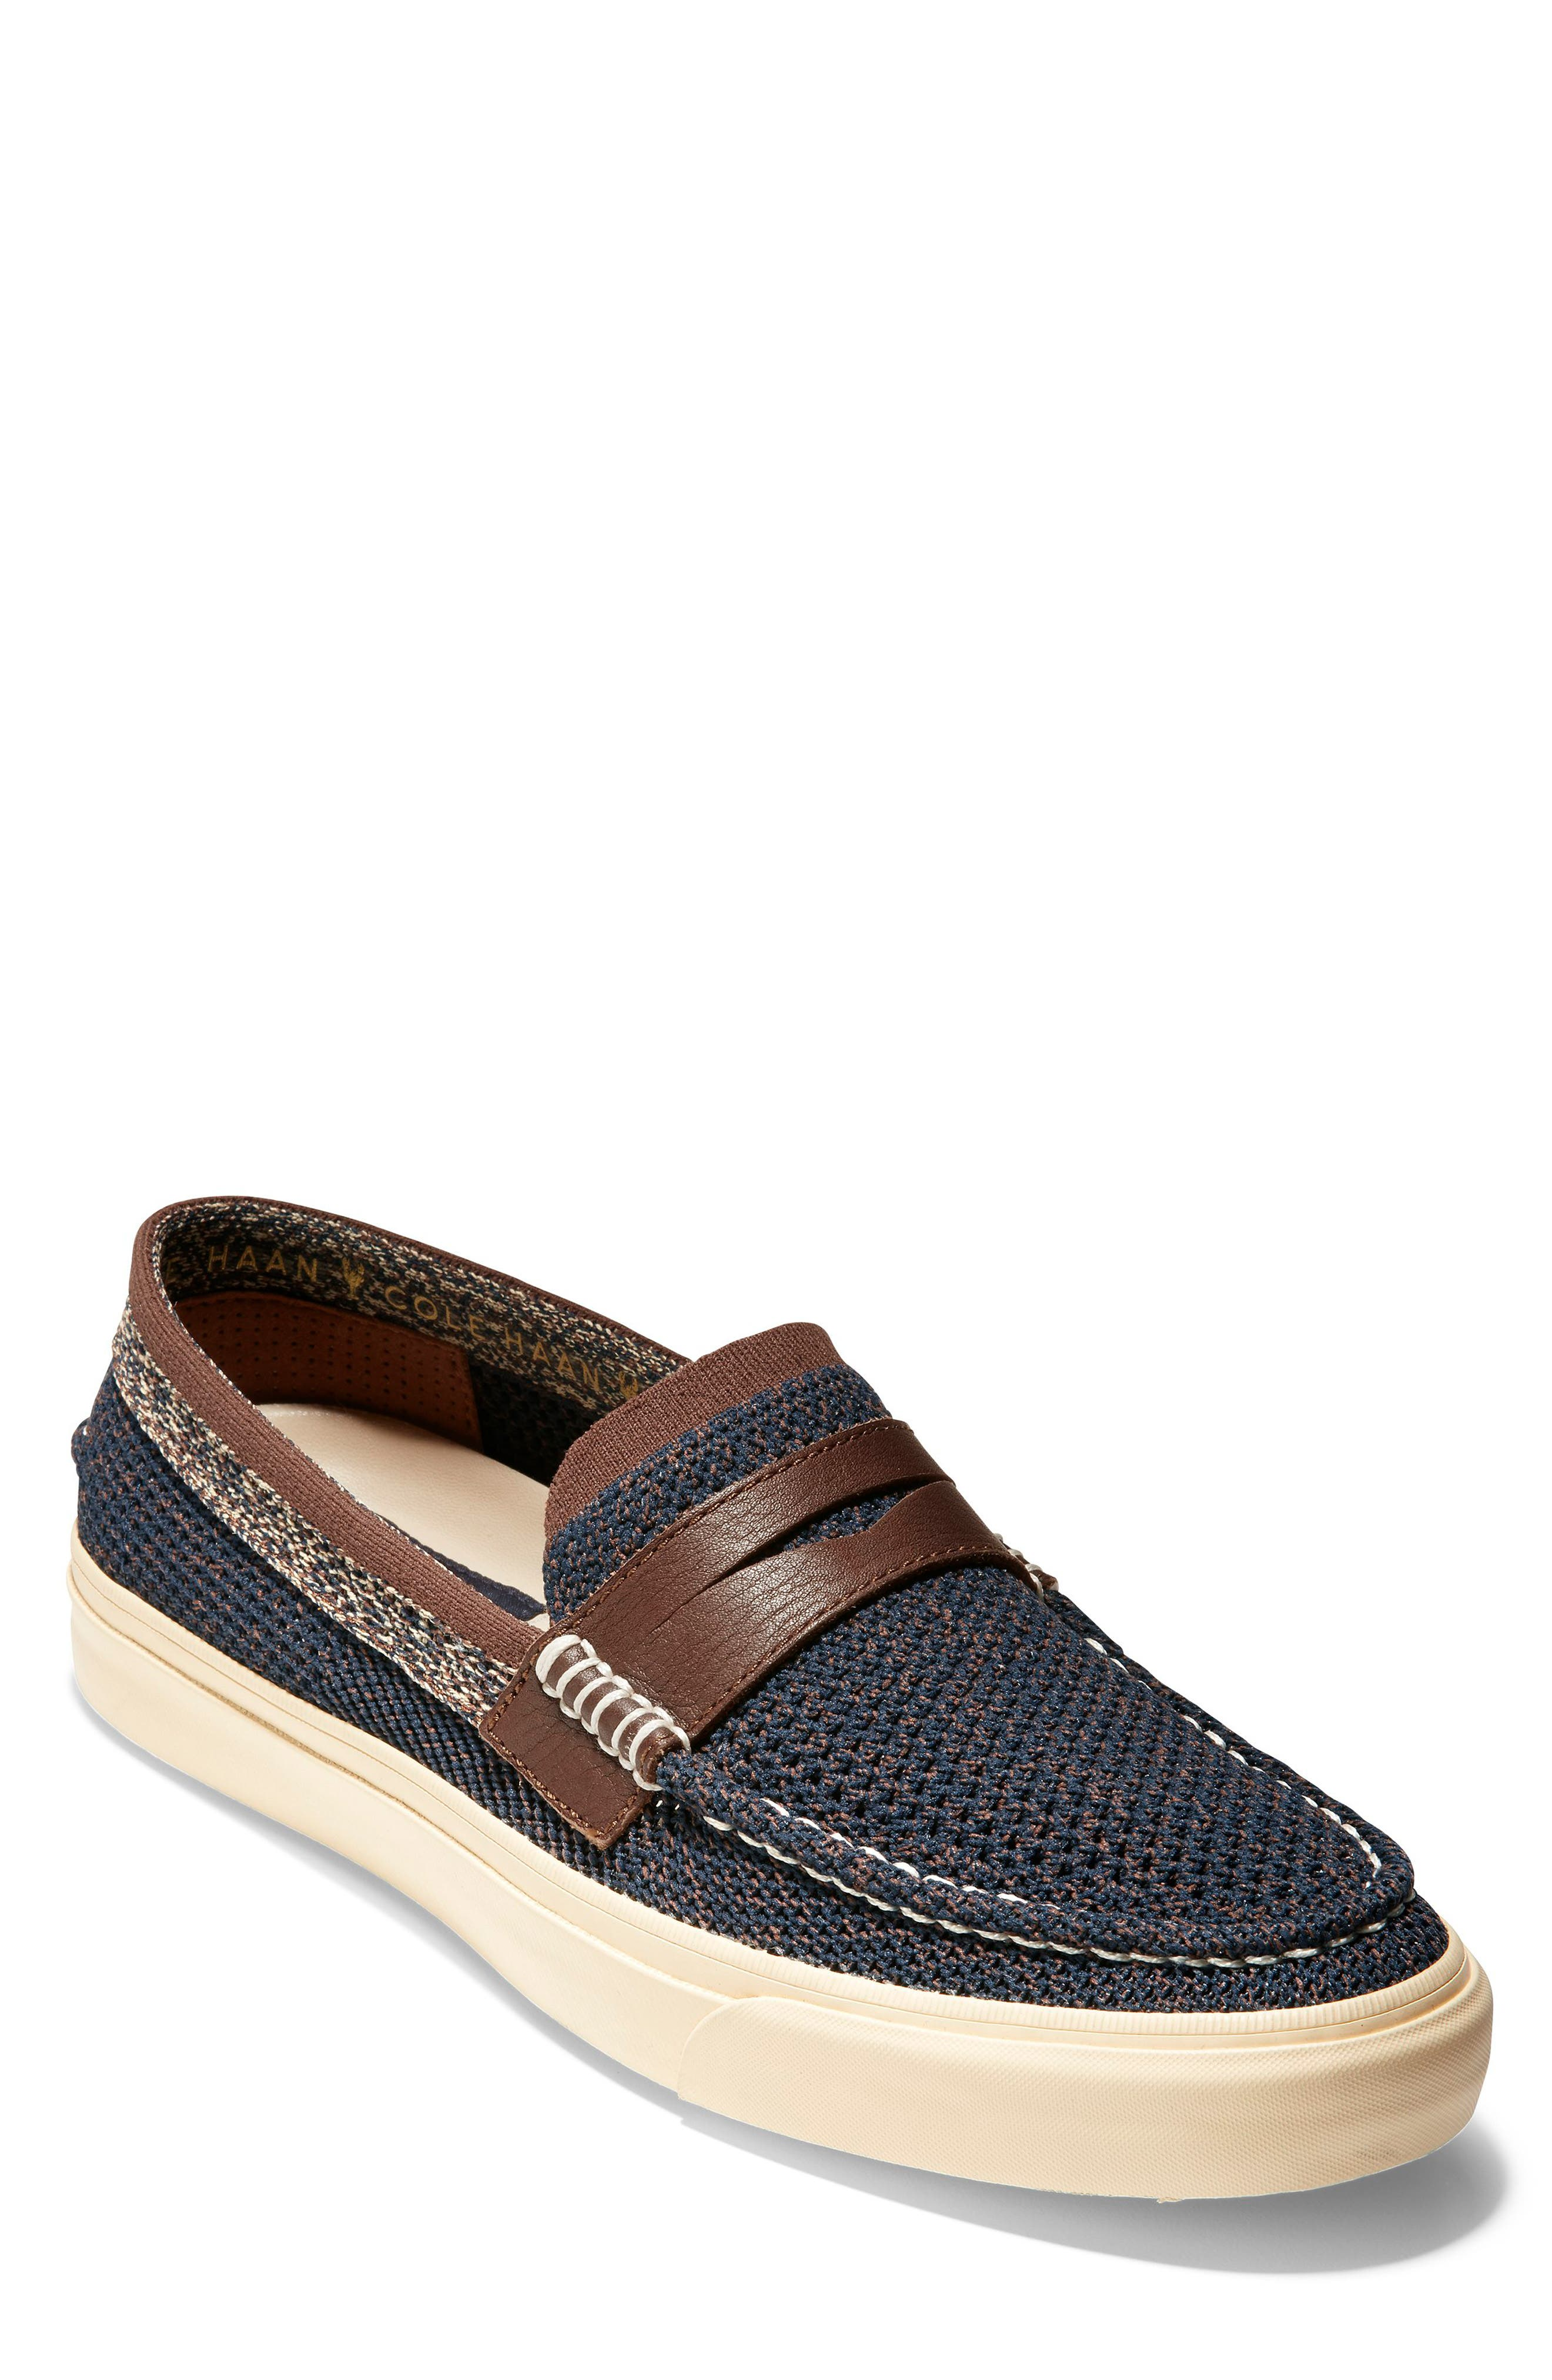 Pinch Weekend LX Penny Loafer,                             Main thumbnail 10, color,